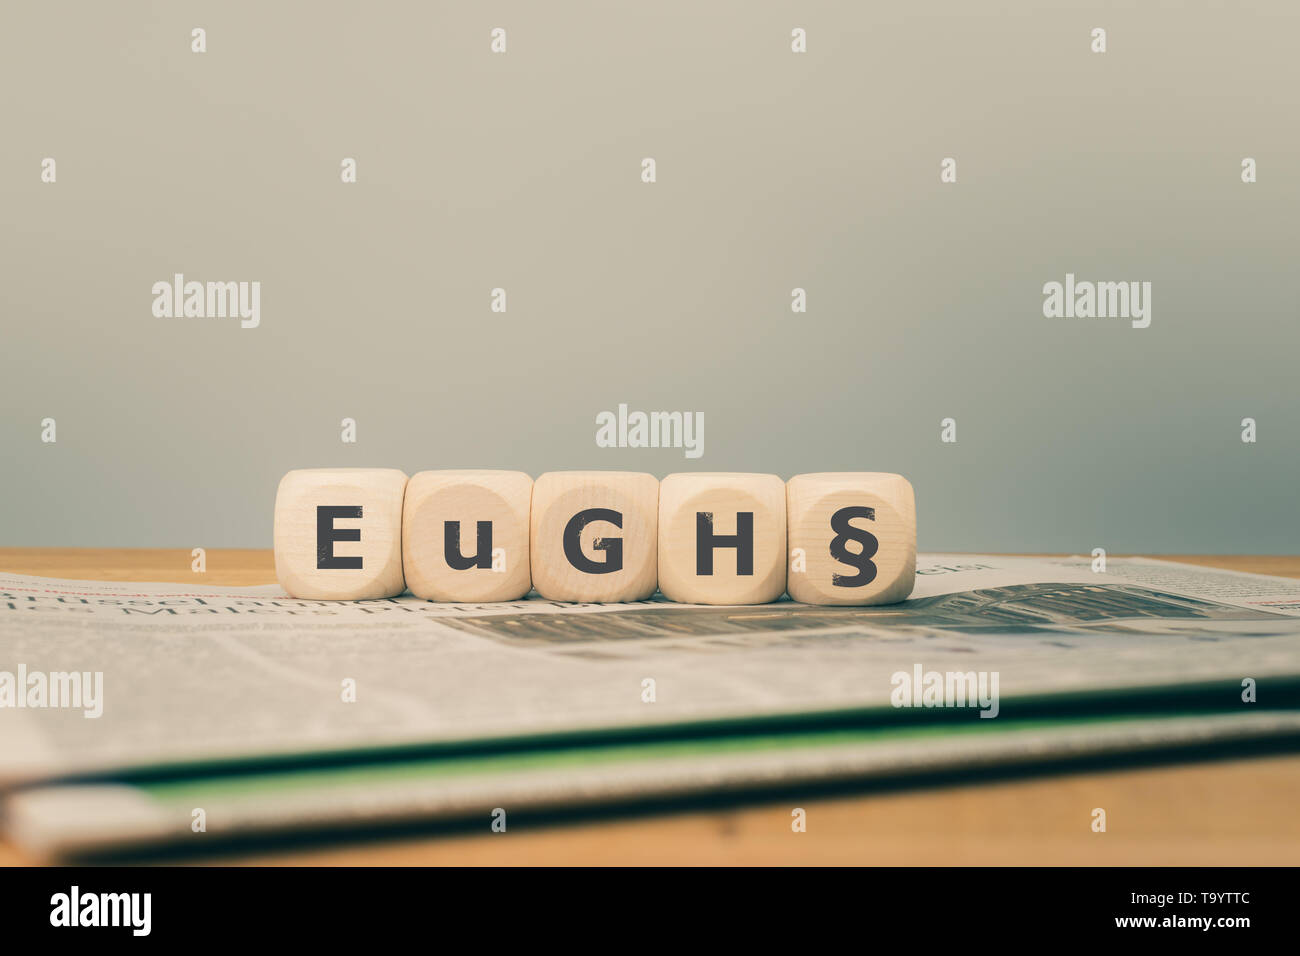 Symbol for a decision of the European Court of Justice. The German abbreviation 'EuGH' (stands for European Court of Justice ECJ) written on cubes pla - Stock Image